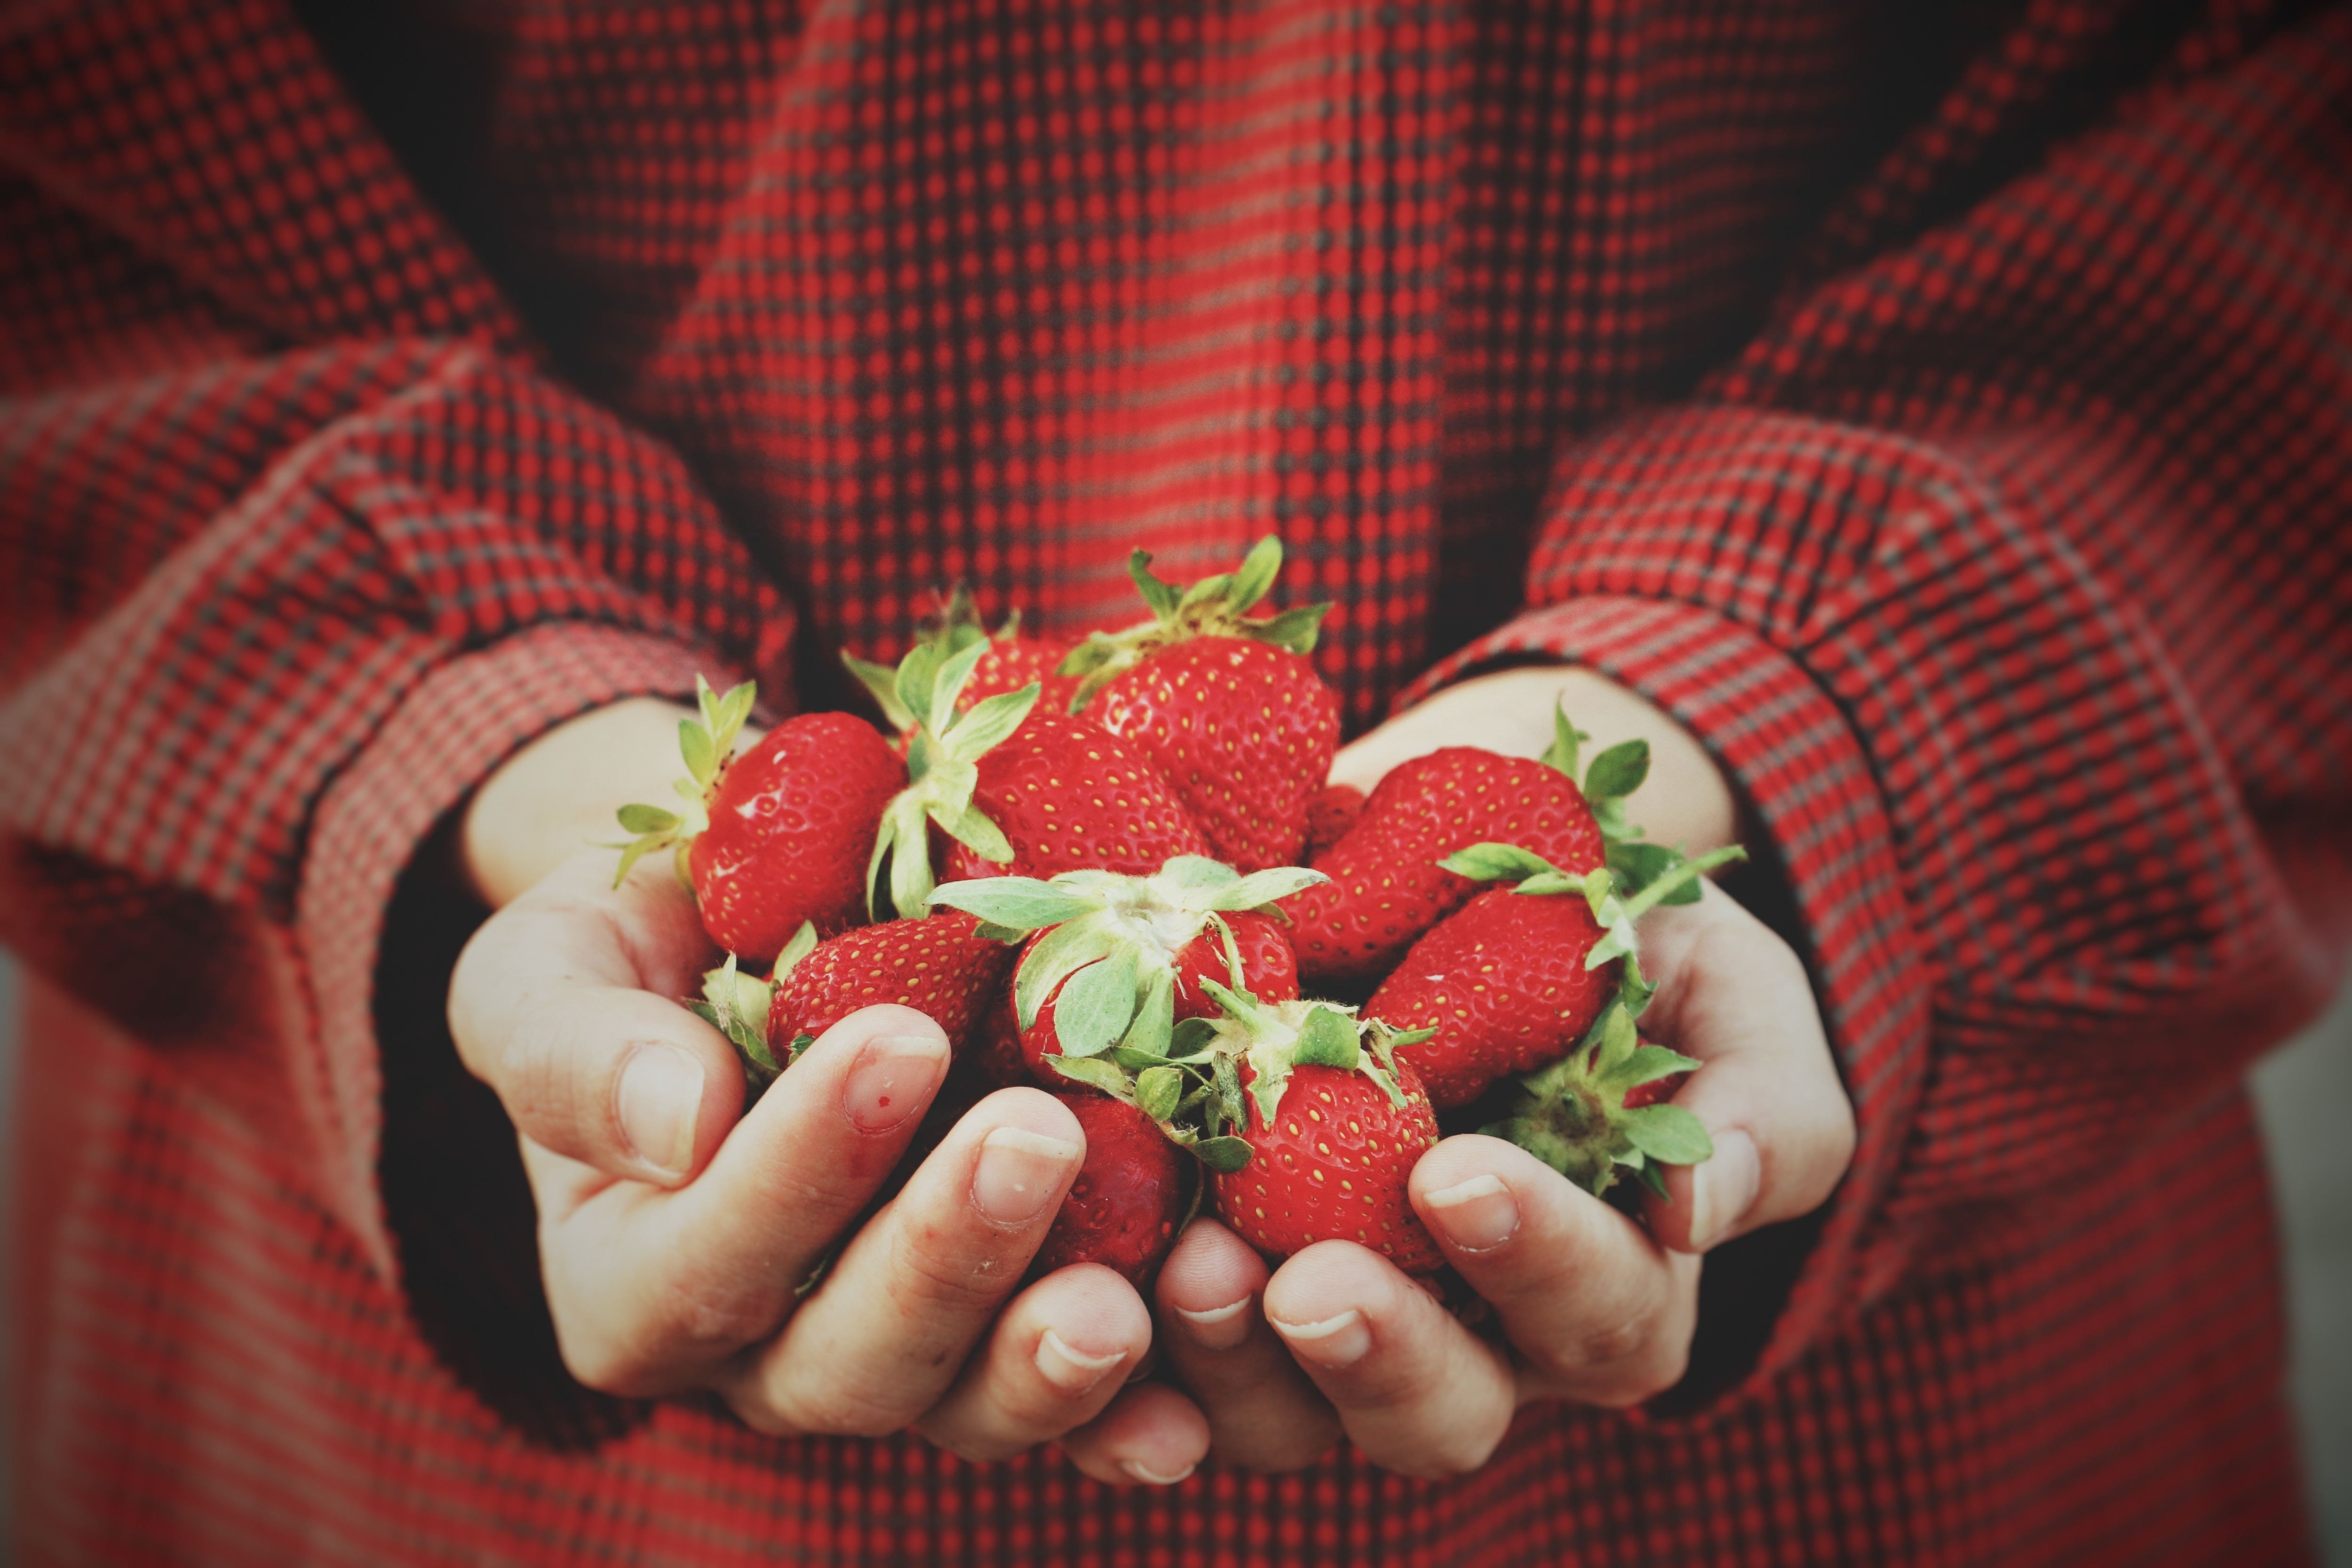 Person holding strawberries from at-home garden